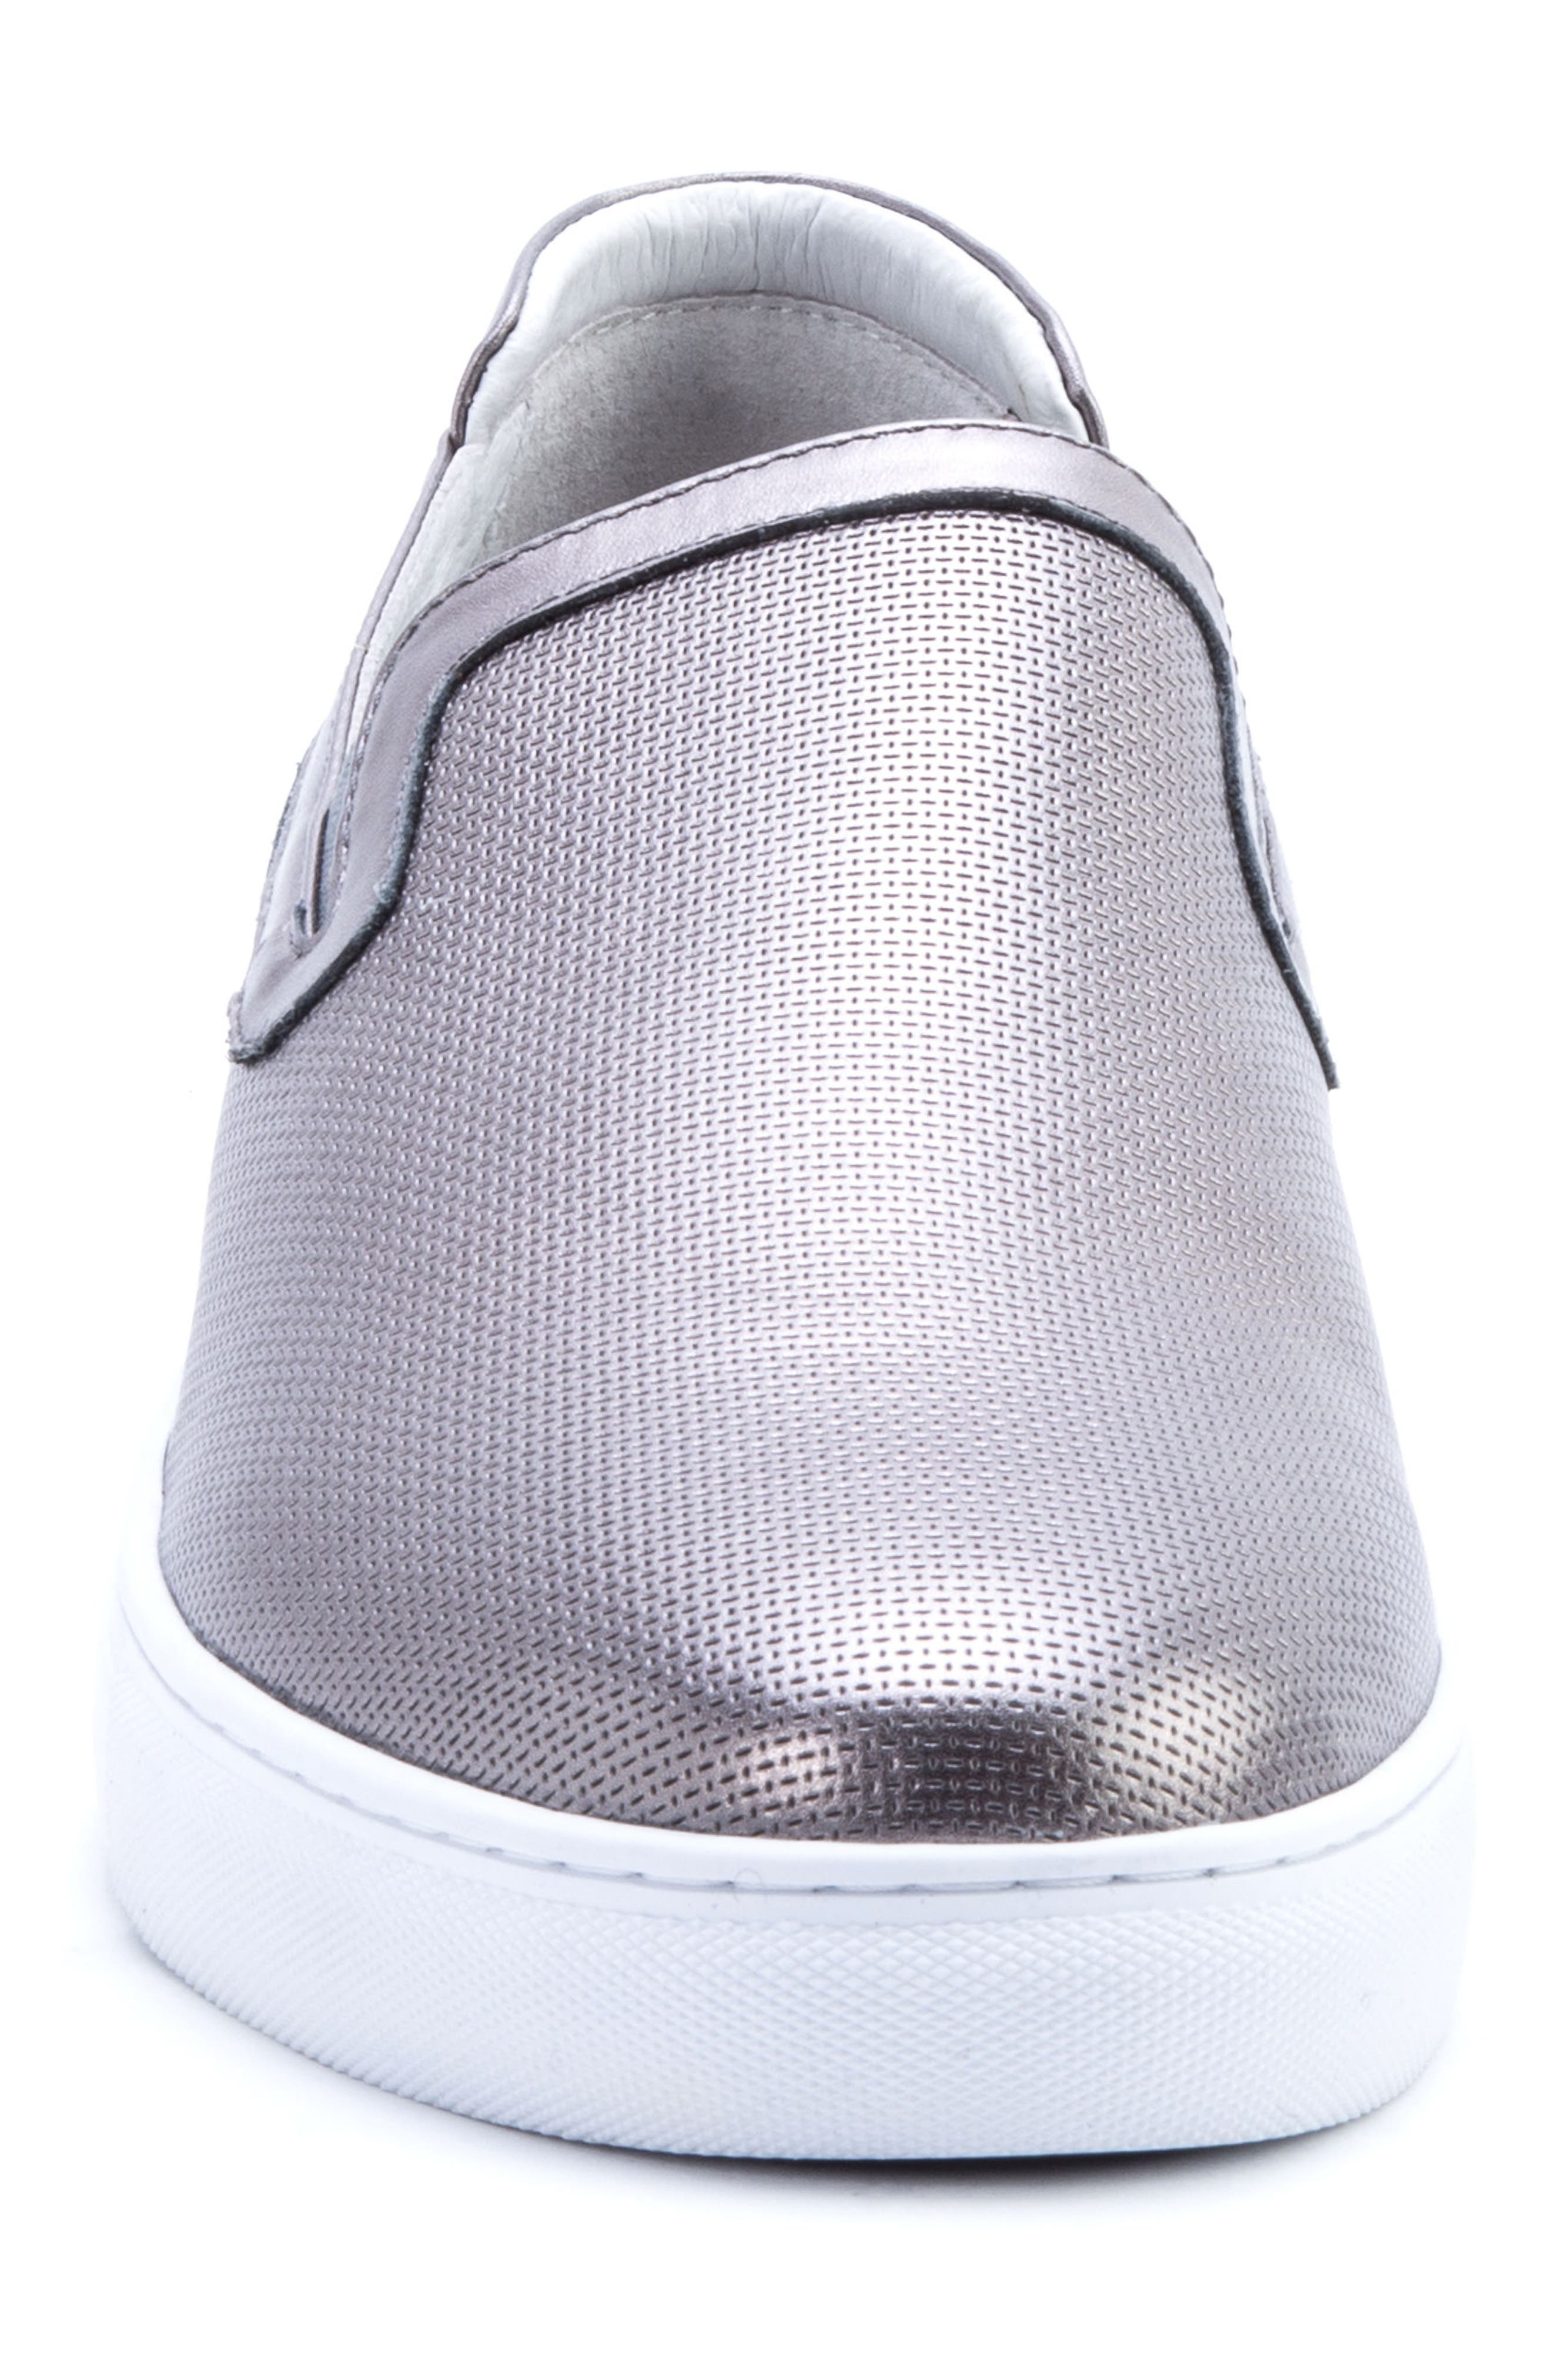 Alternate Image 4  - Badgley Mischka Grant Sneaker (Men)